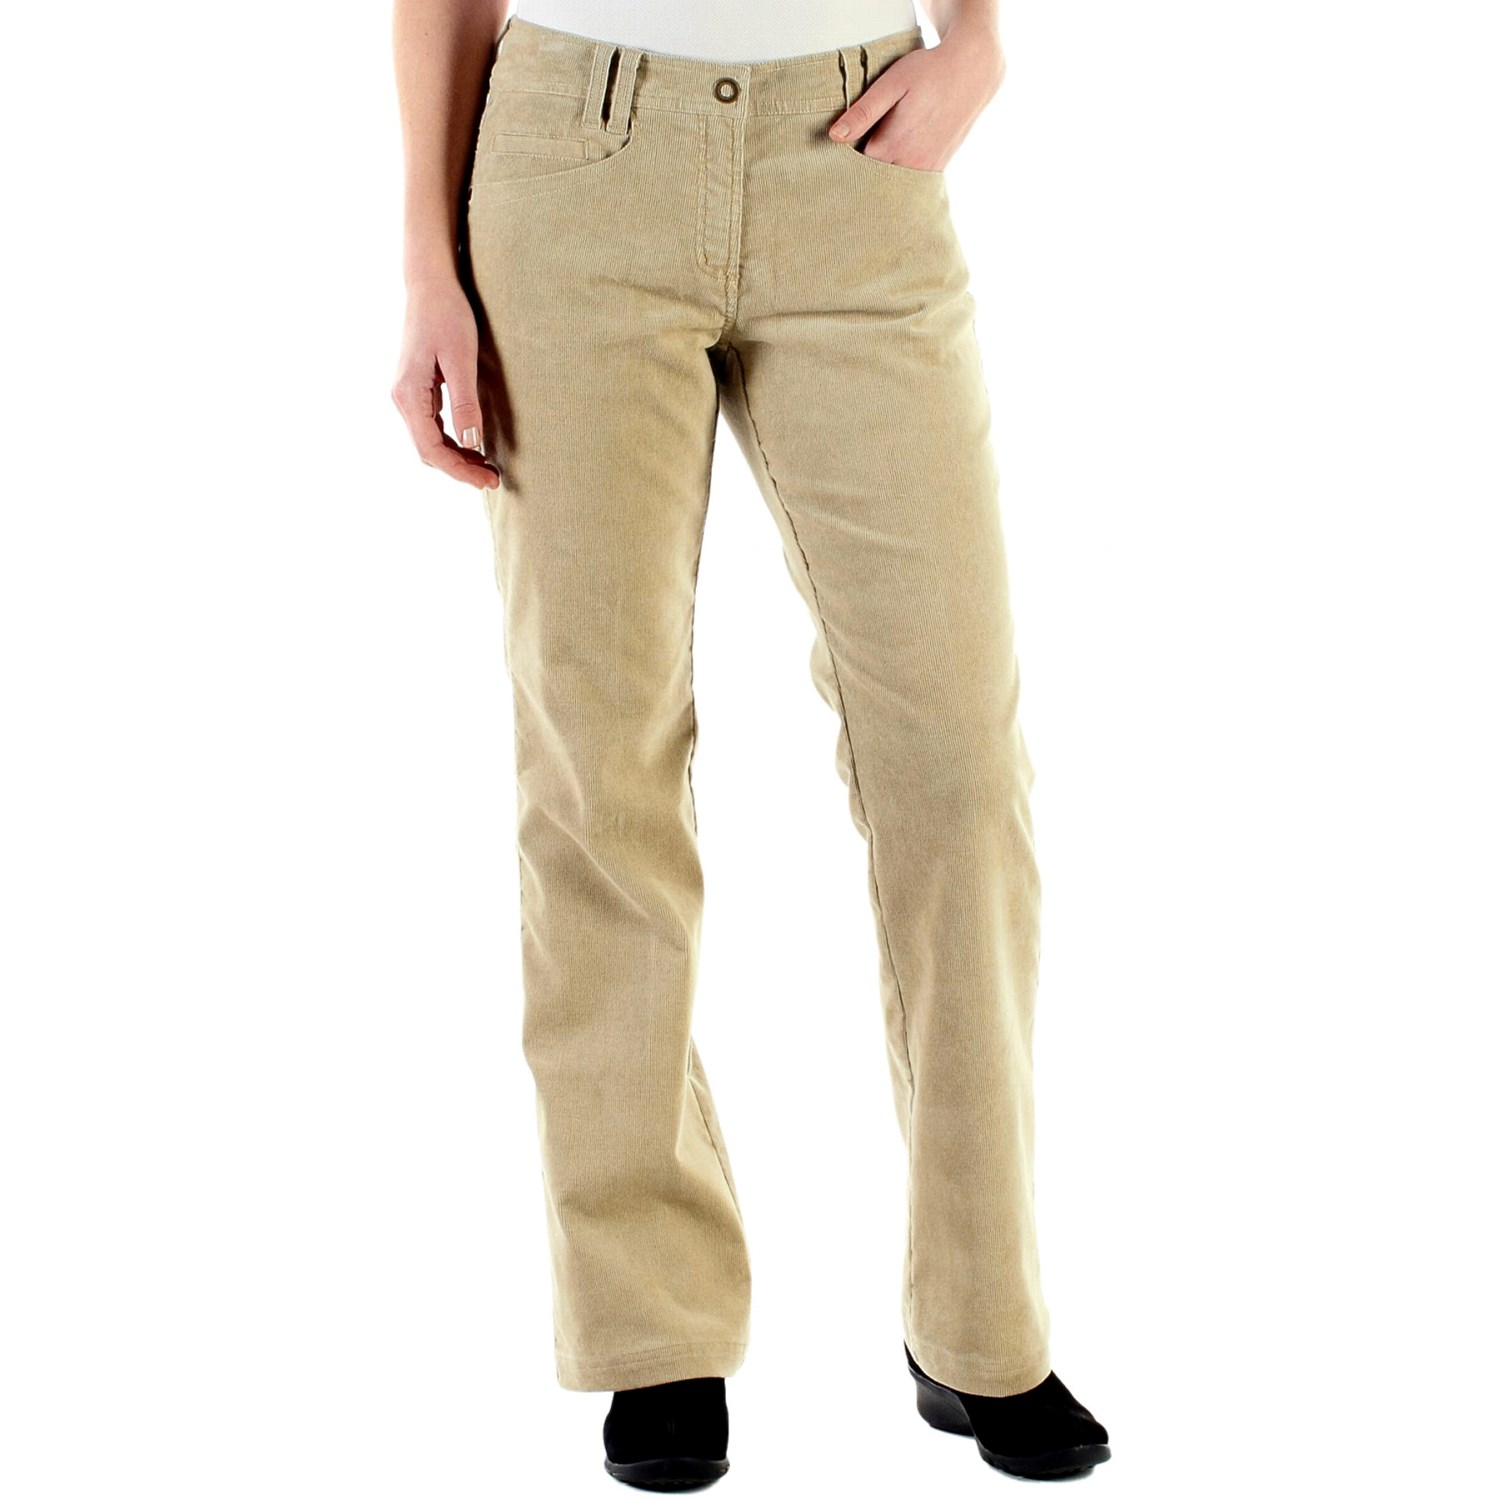 Elegant Authenticity For Women, Especially  Youll See Over And Over, Like, Khakis Its Almost Like A Uniformsomeone Who Needs To Put On Their Uniform To Go Do Their